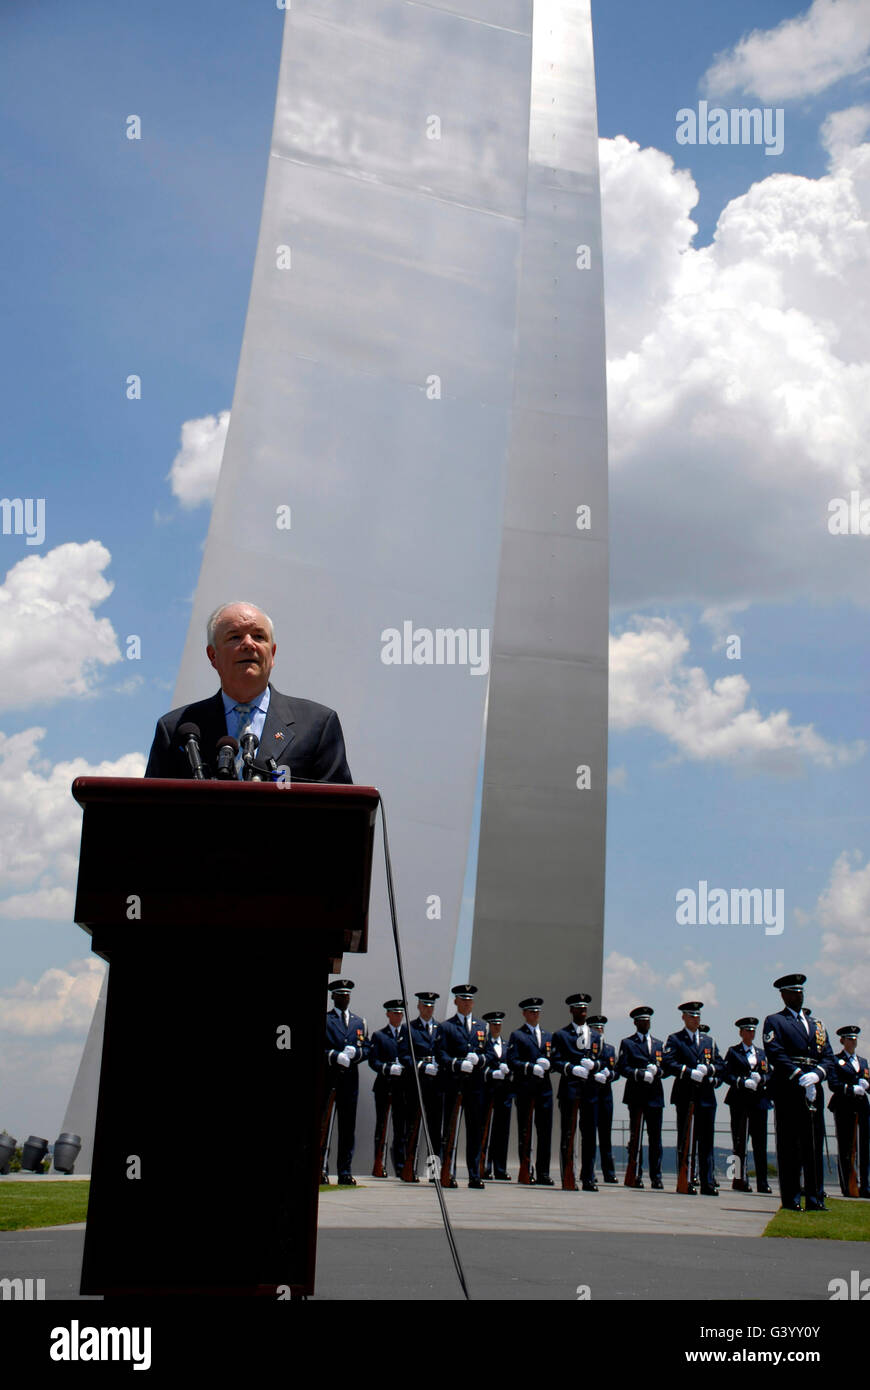 Secretary of the Air Force salutes a crowd of Airmen at the Air Force Memorial. - Stock Image